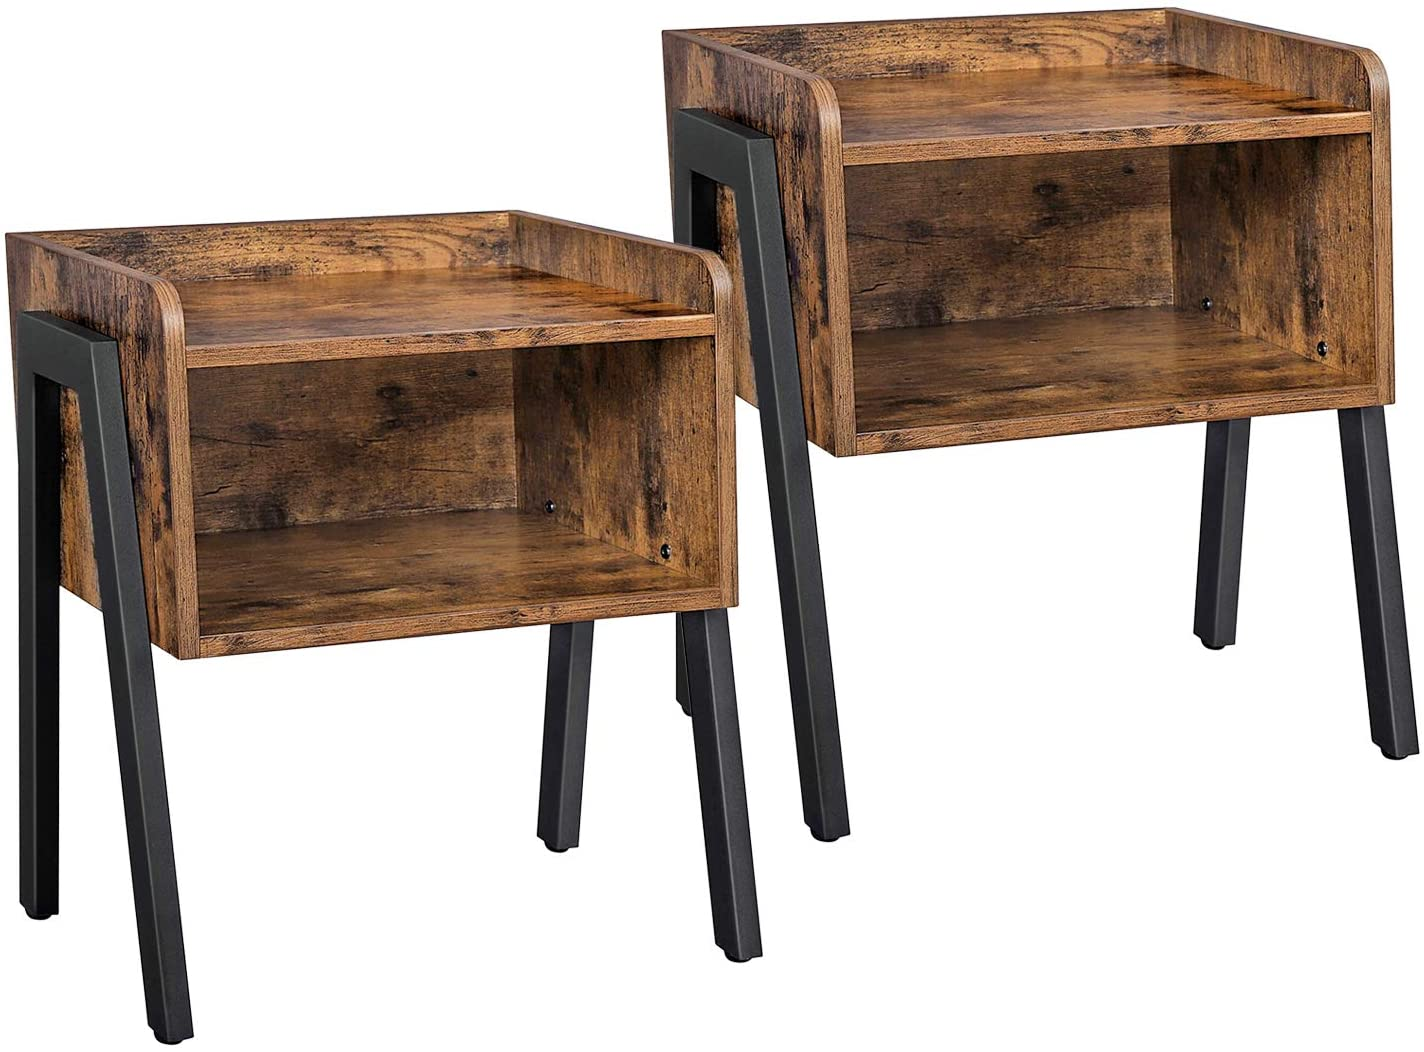 Enjoy fast, free nationwide shipping!  Family owned and operated, HawkinsWoodshop.com is your one stop shop for affordable furniture.  Shop HawkinsWoodshop.com for solid wood & metal modern, traditional, contemporary, industrial, custom, rustic, and farmhouse furniture including our Ryan Nightstands Set of 2 Stackable End Tables.